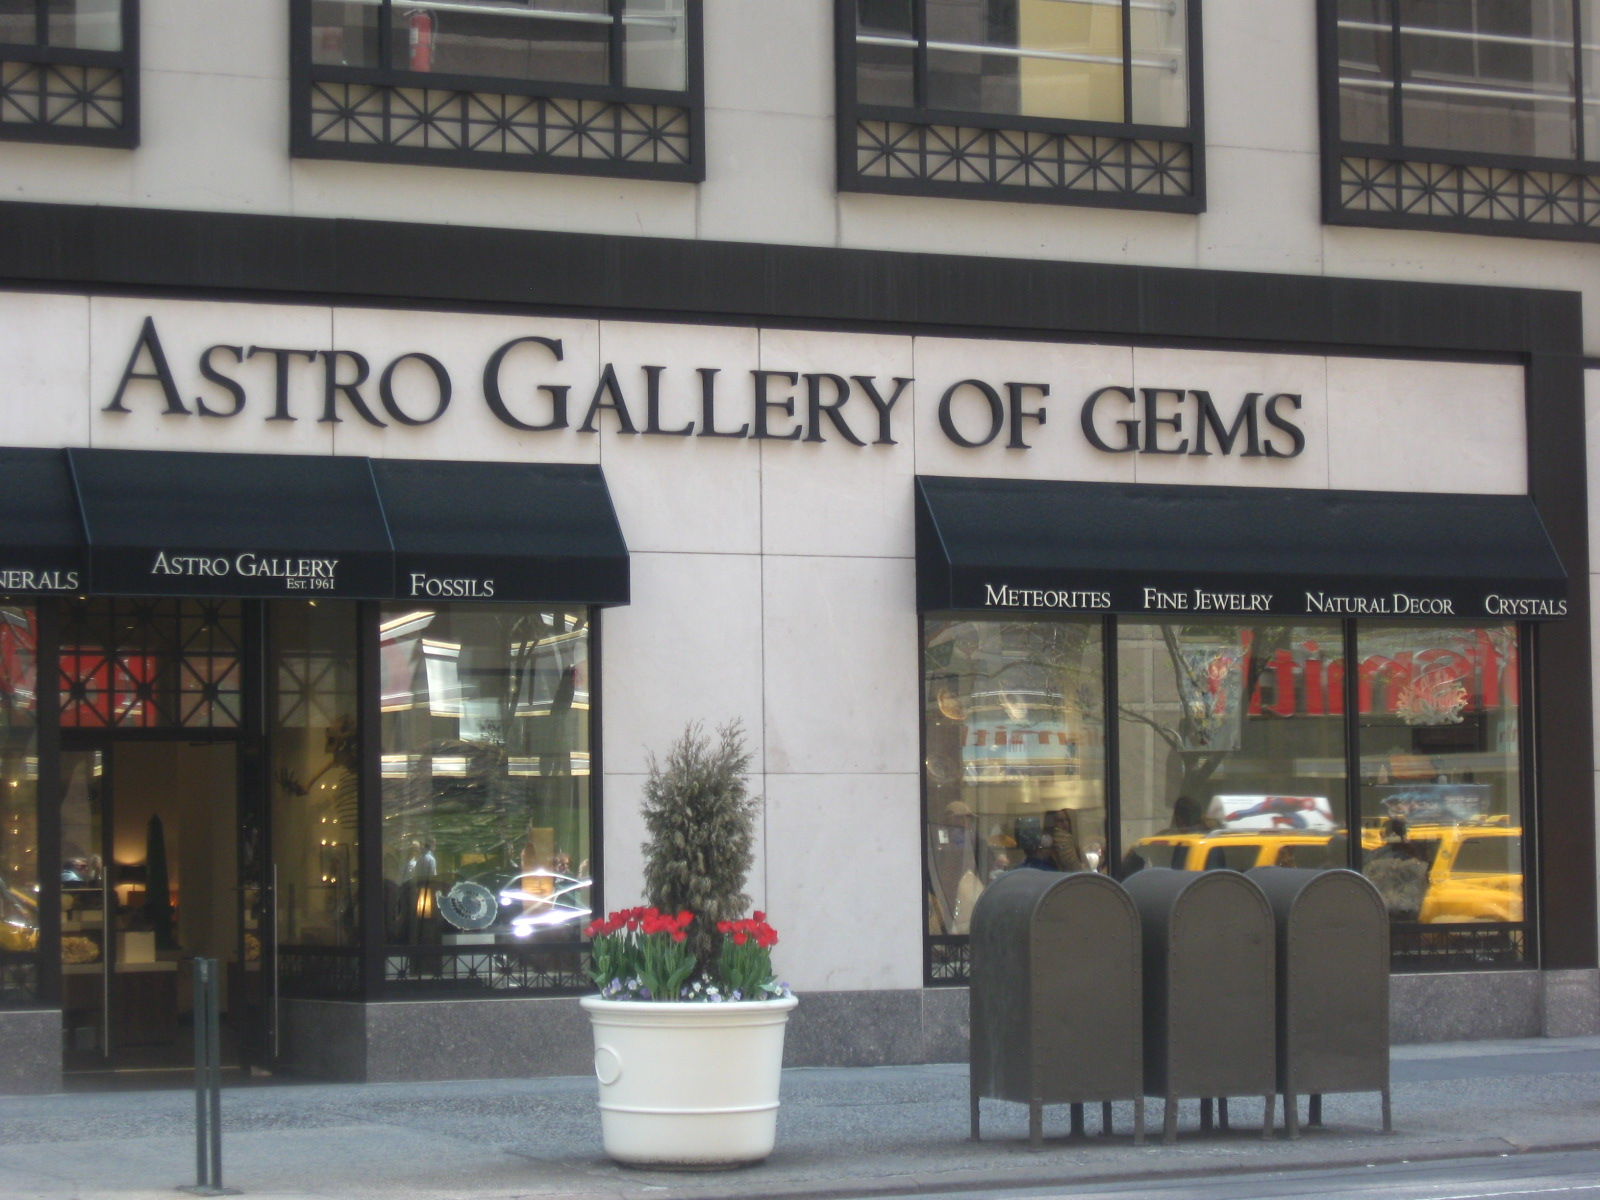 Astro Gallery of Gems